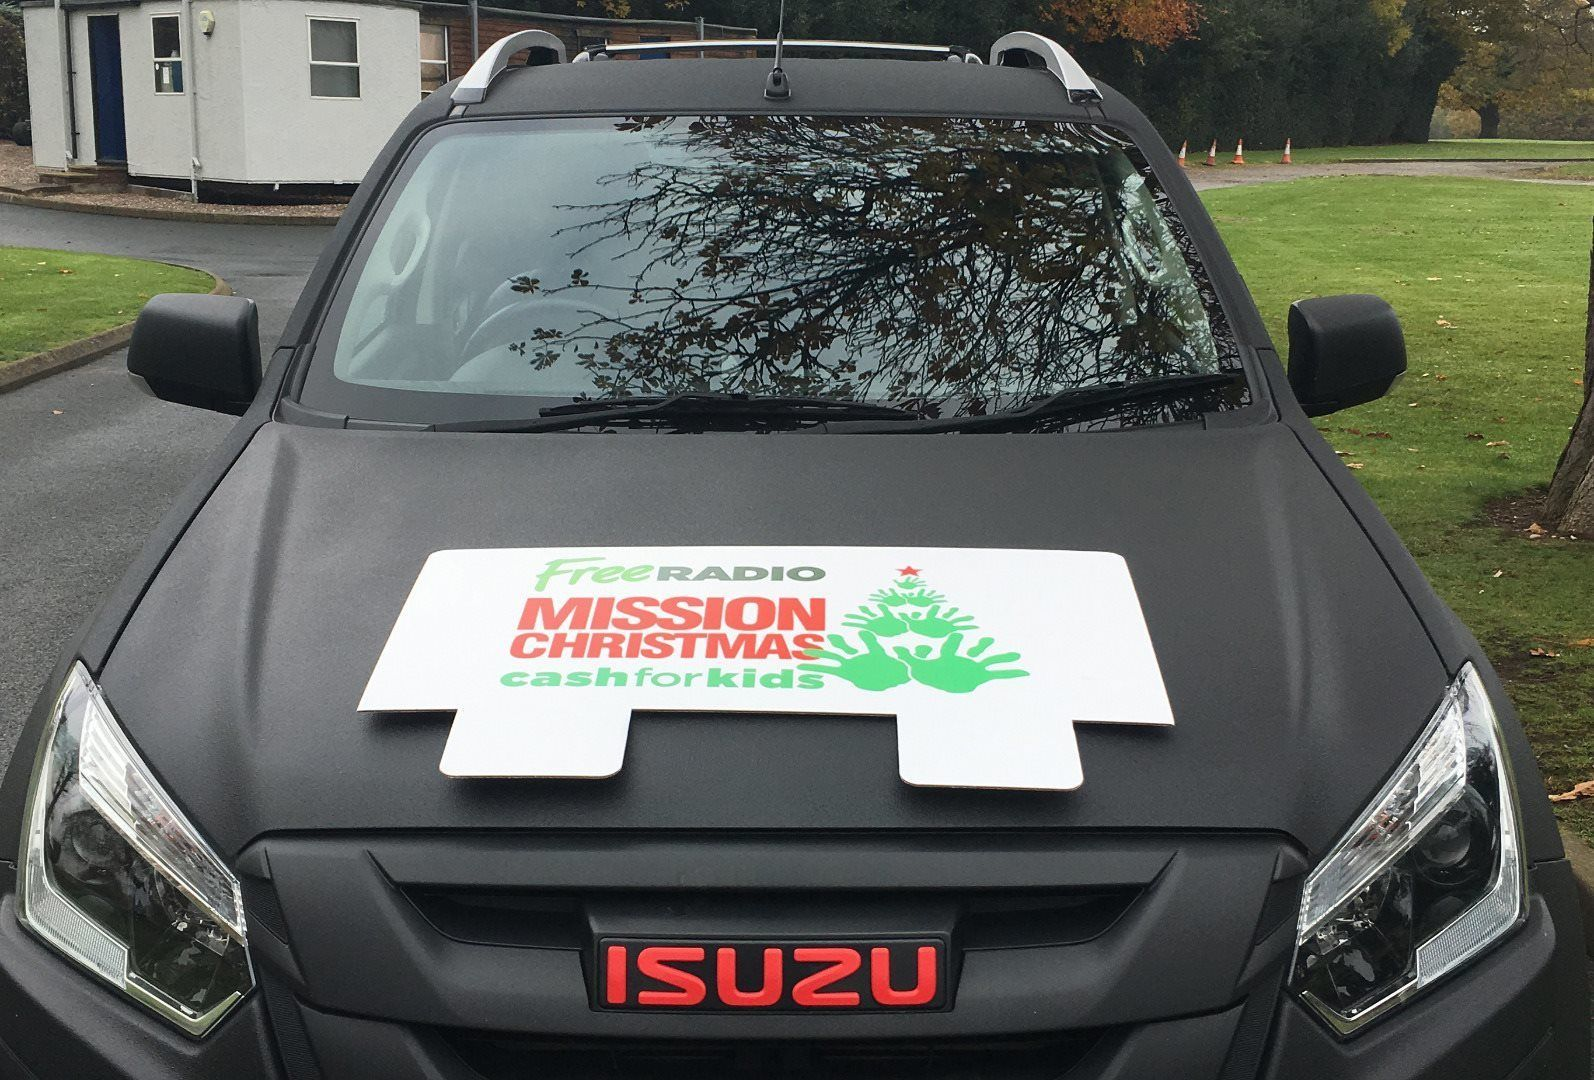 ISUZU SUPPORTS CASH FOR KIDS MISSION CHRISTMAS